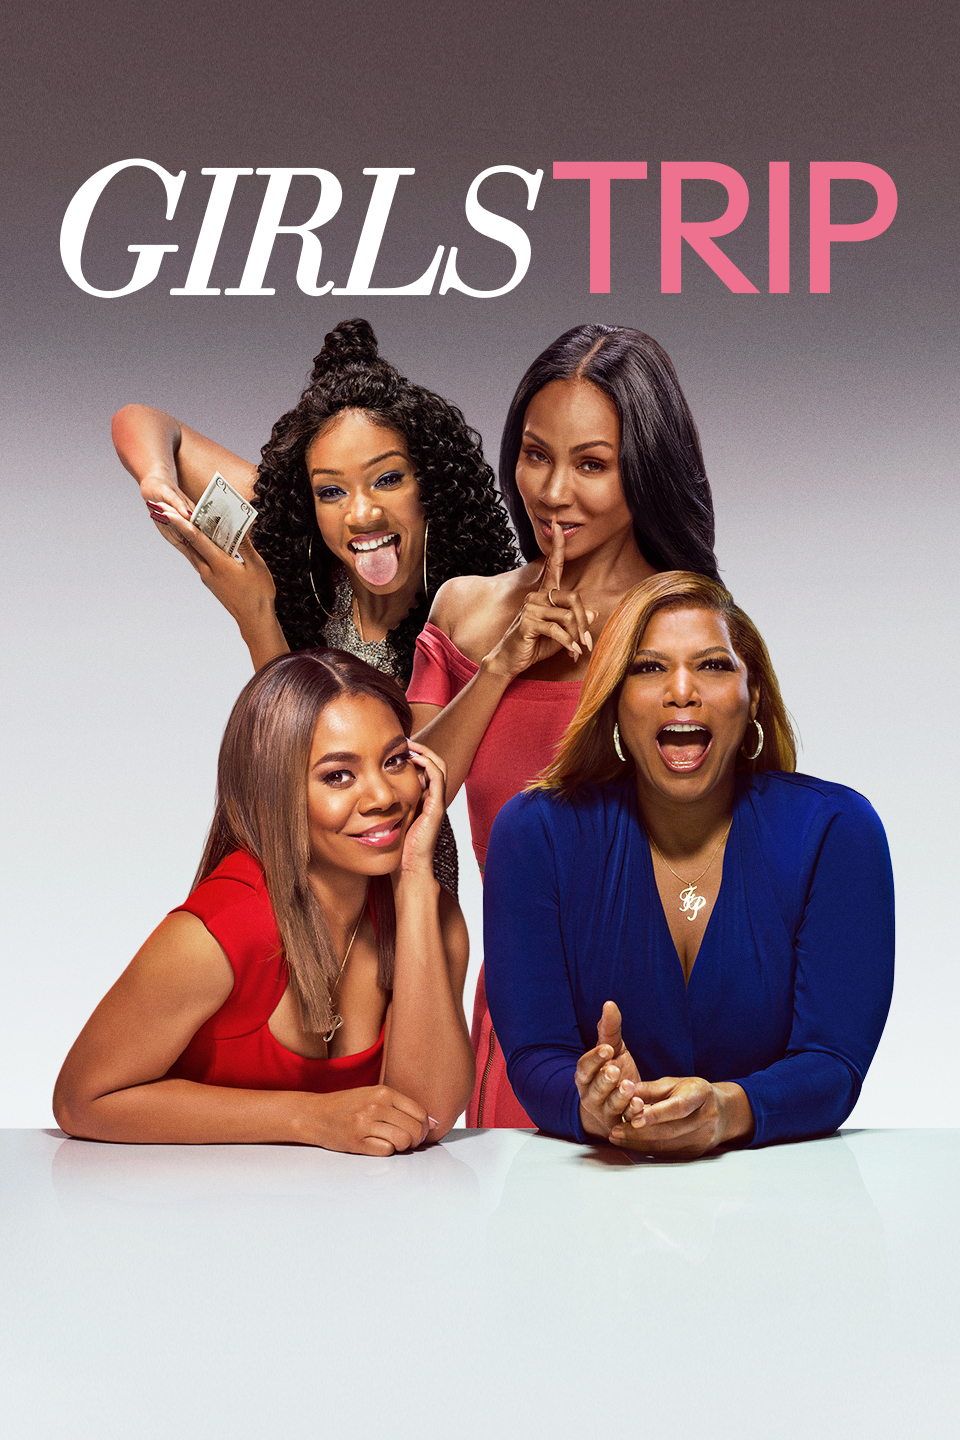 Image of: Heat Girls Trip The End Of Cinema Comedy Foxtel Movies